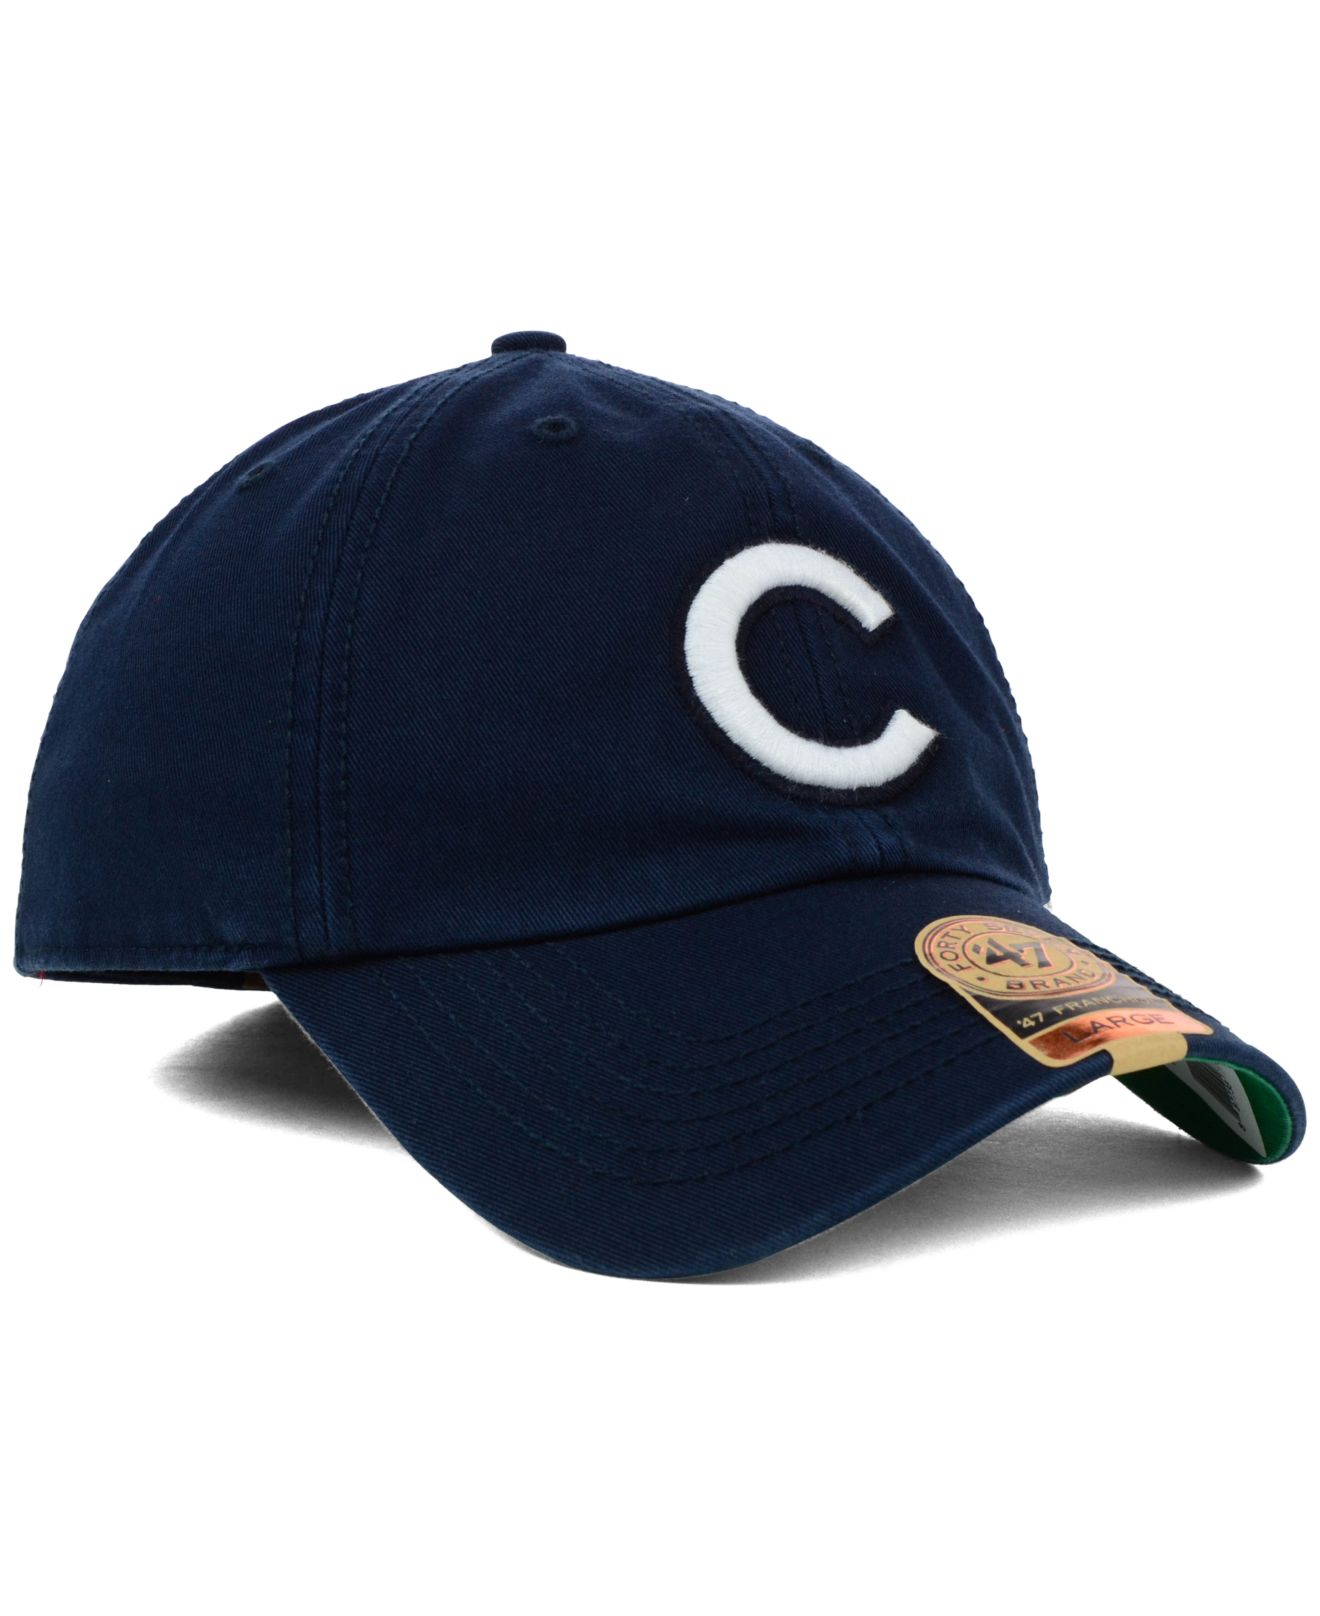 e74740762df21 italy lyst 47 brand chicago cubs mlb harbor franchise cap in blue for men  6a173 ffe39